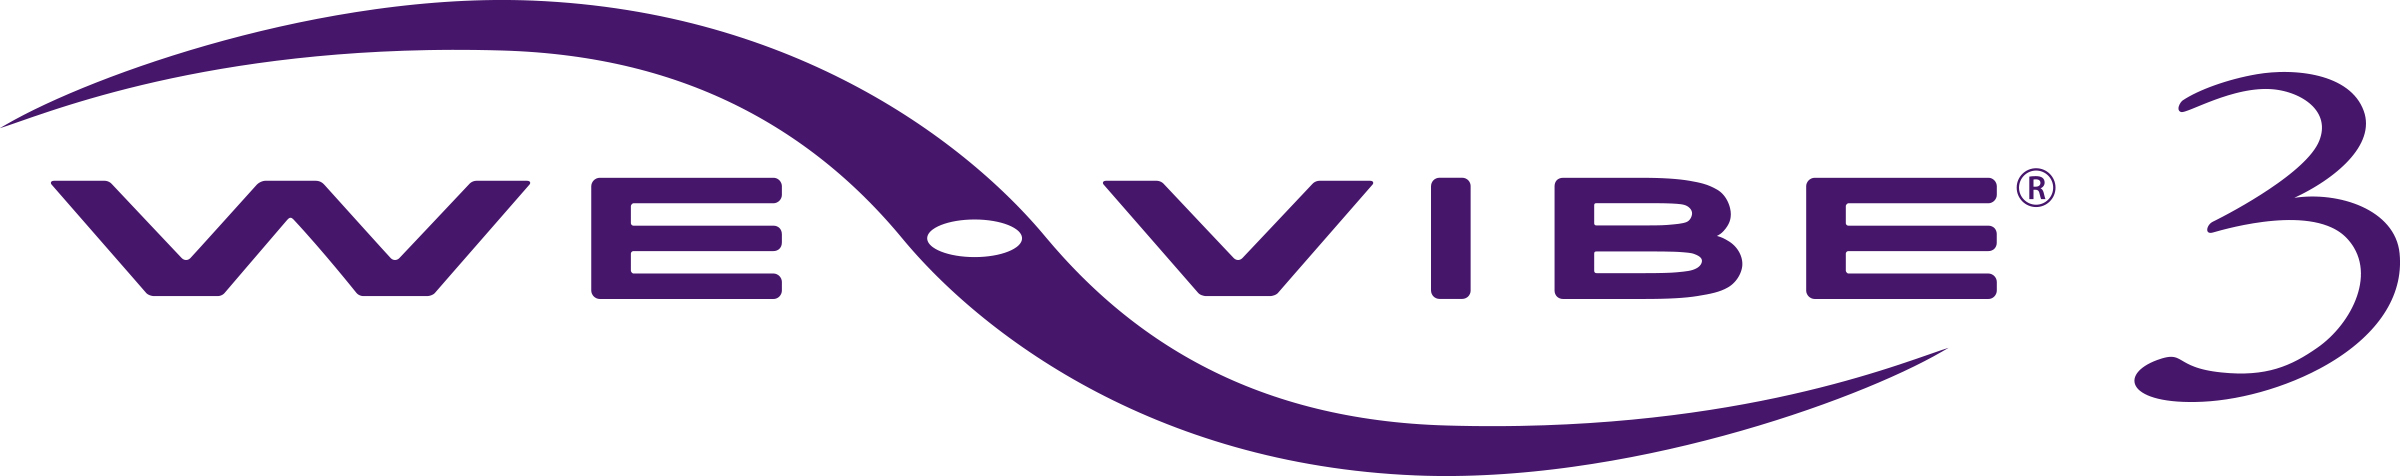 http://presskit.we-vibe.com/retailers/downloads/WV3/Logos_and_Graphics/WeVibe-3_logo-purple-2400.jpg